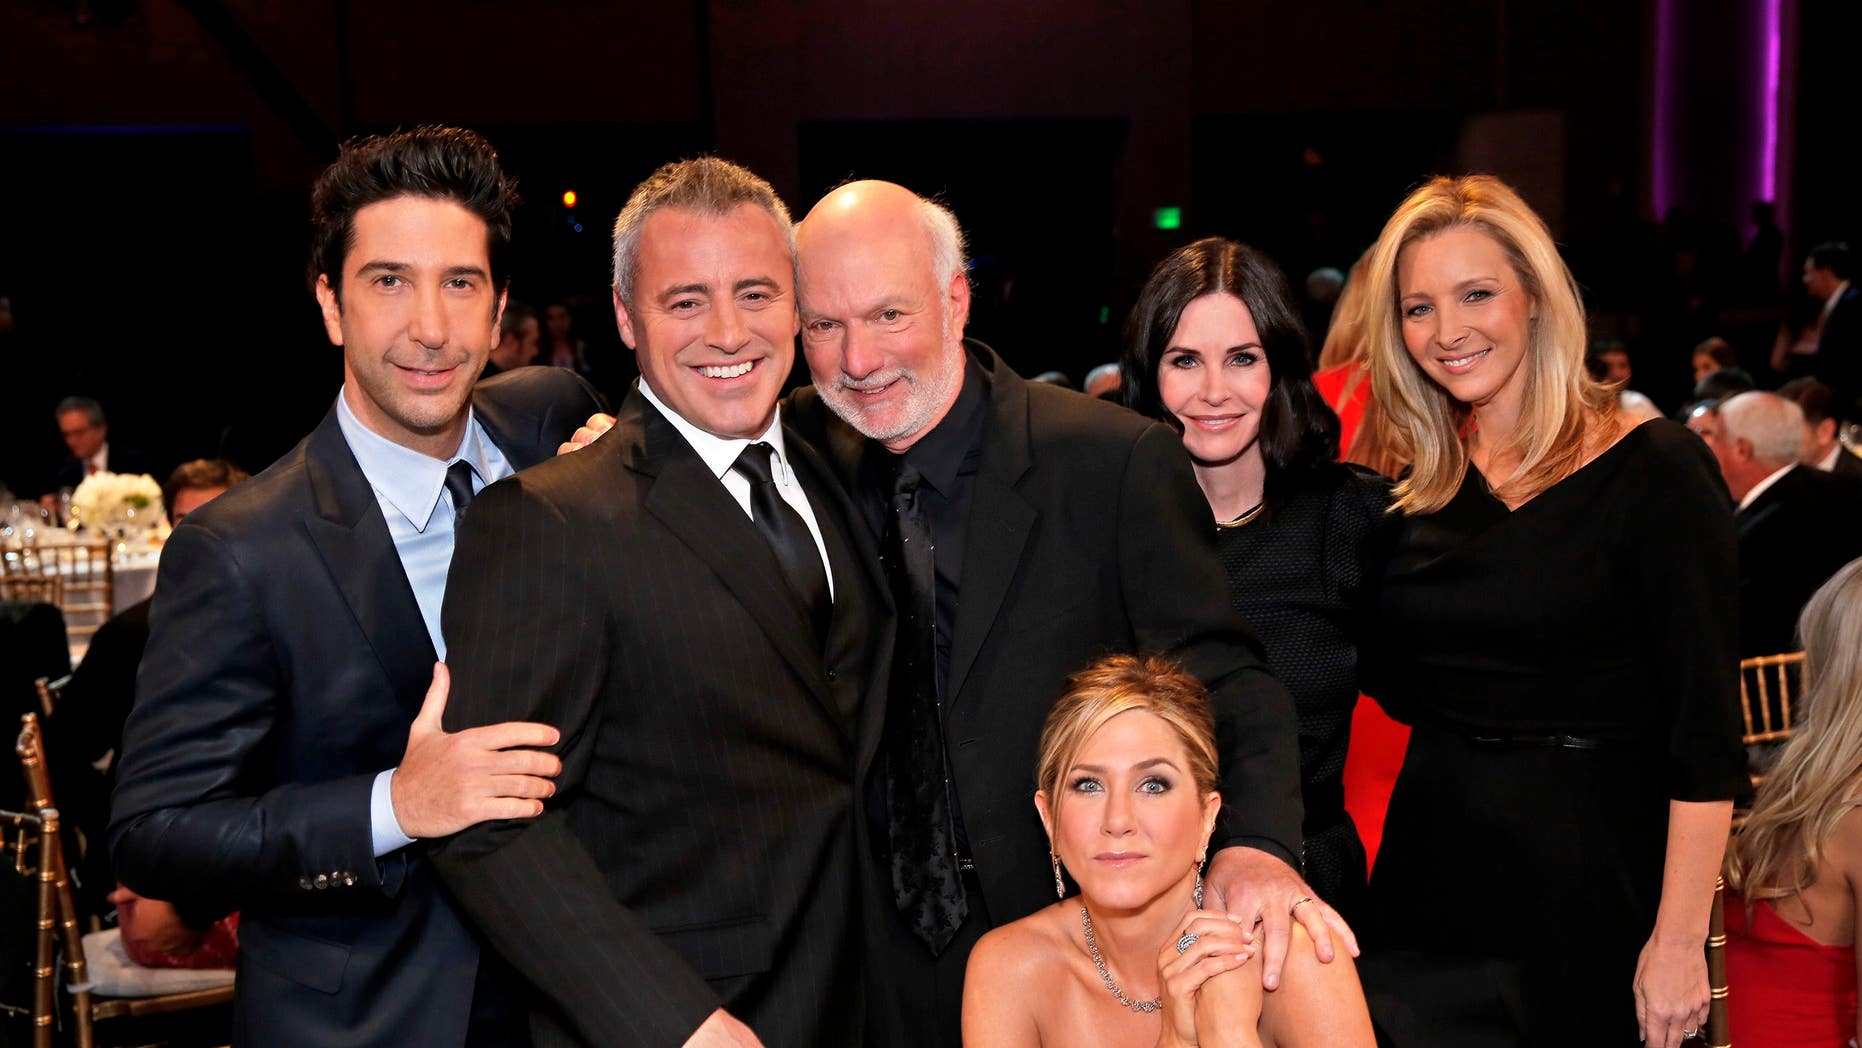 """In this image released by NBC, director James Burrows, standing center, poses with the cast of """"Friends,"""" from left,  David Schwimmer, Matt LeBlanc, Jennifer Aniston, seated, Courteney Cox and Lisa Kudrow."""